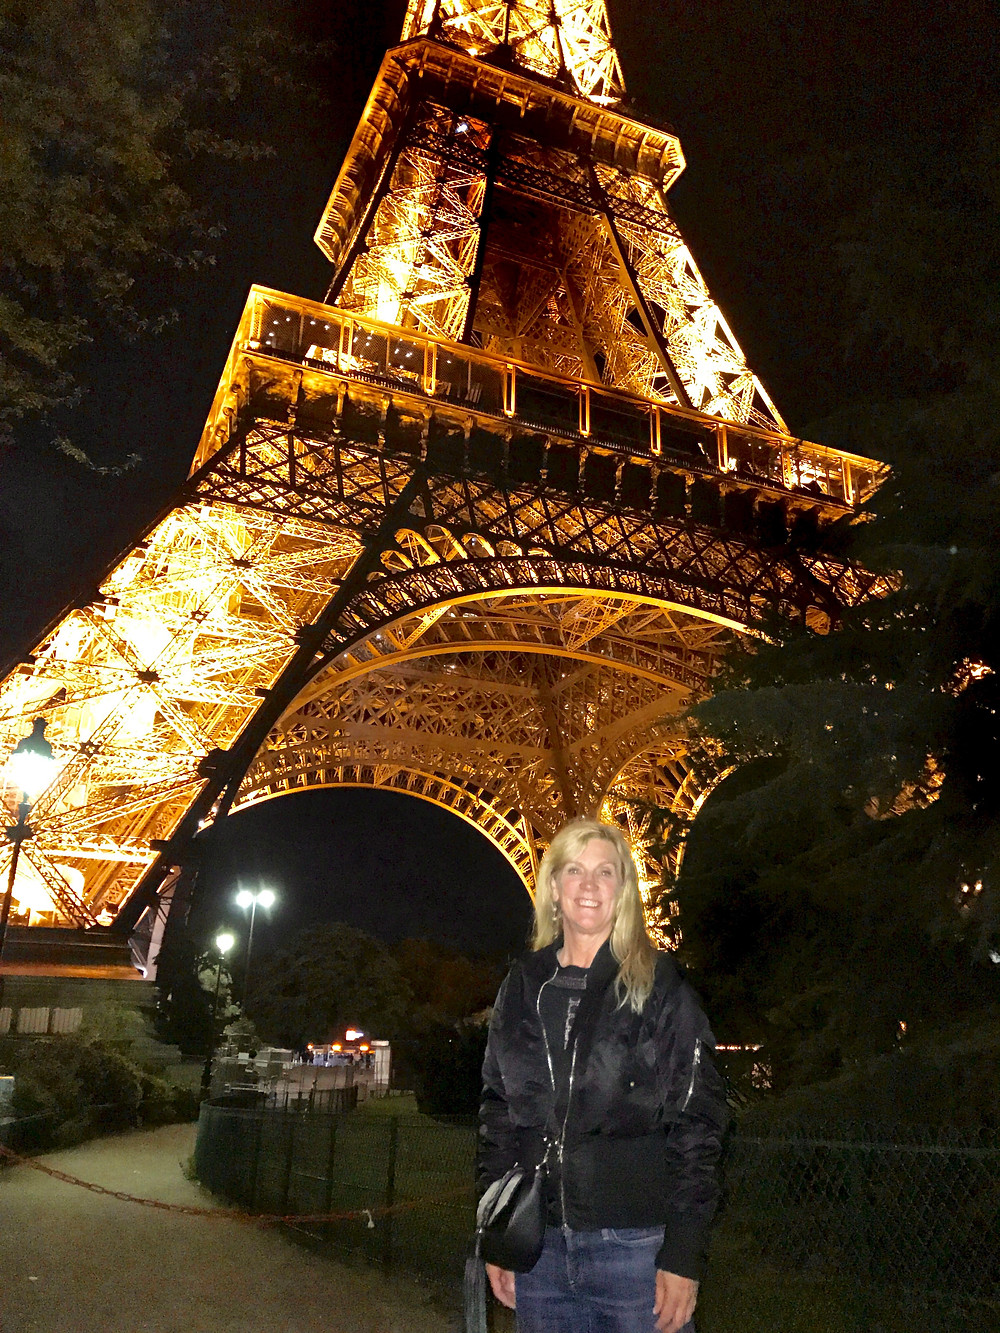 strolling through Paris at night in clean and mostly black clothing